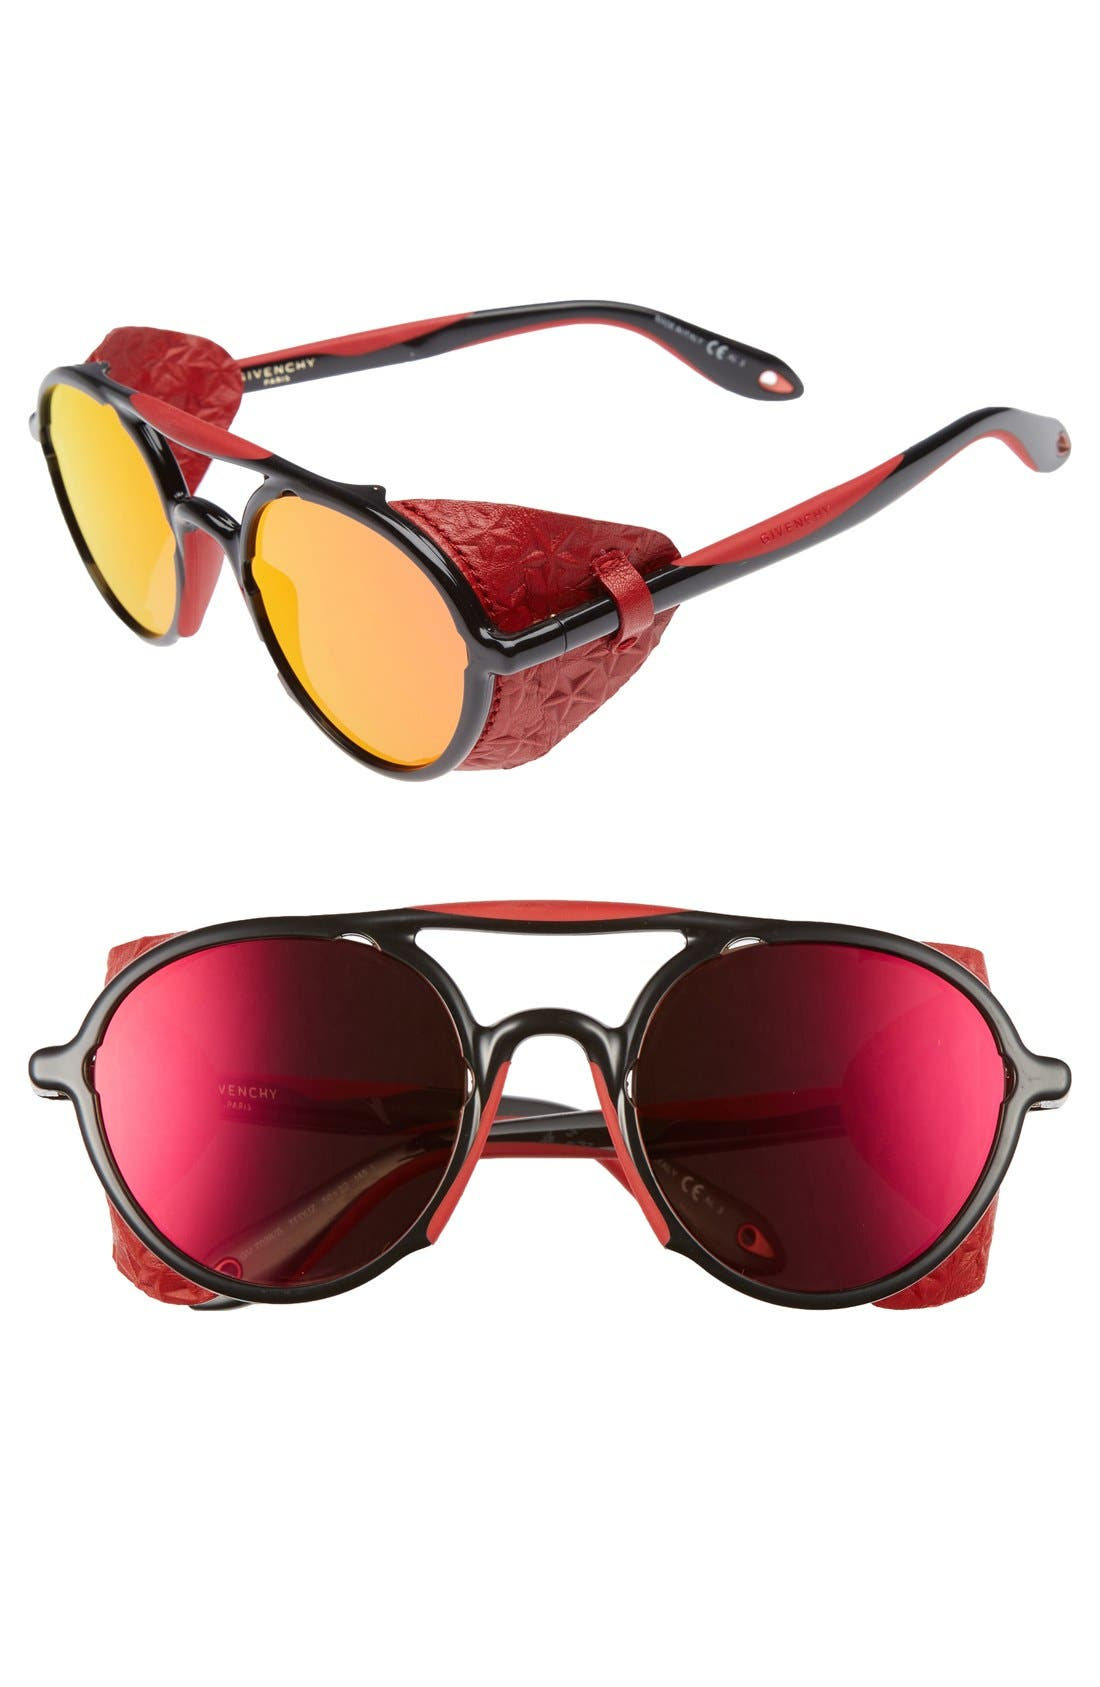 50mm Sunglasses,                         Main,                         color, Black/ Red